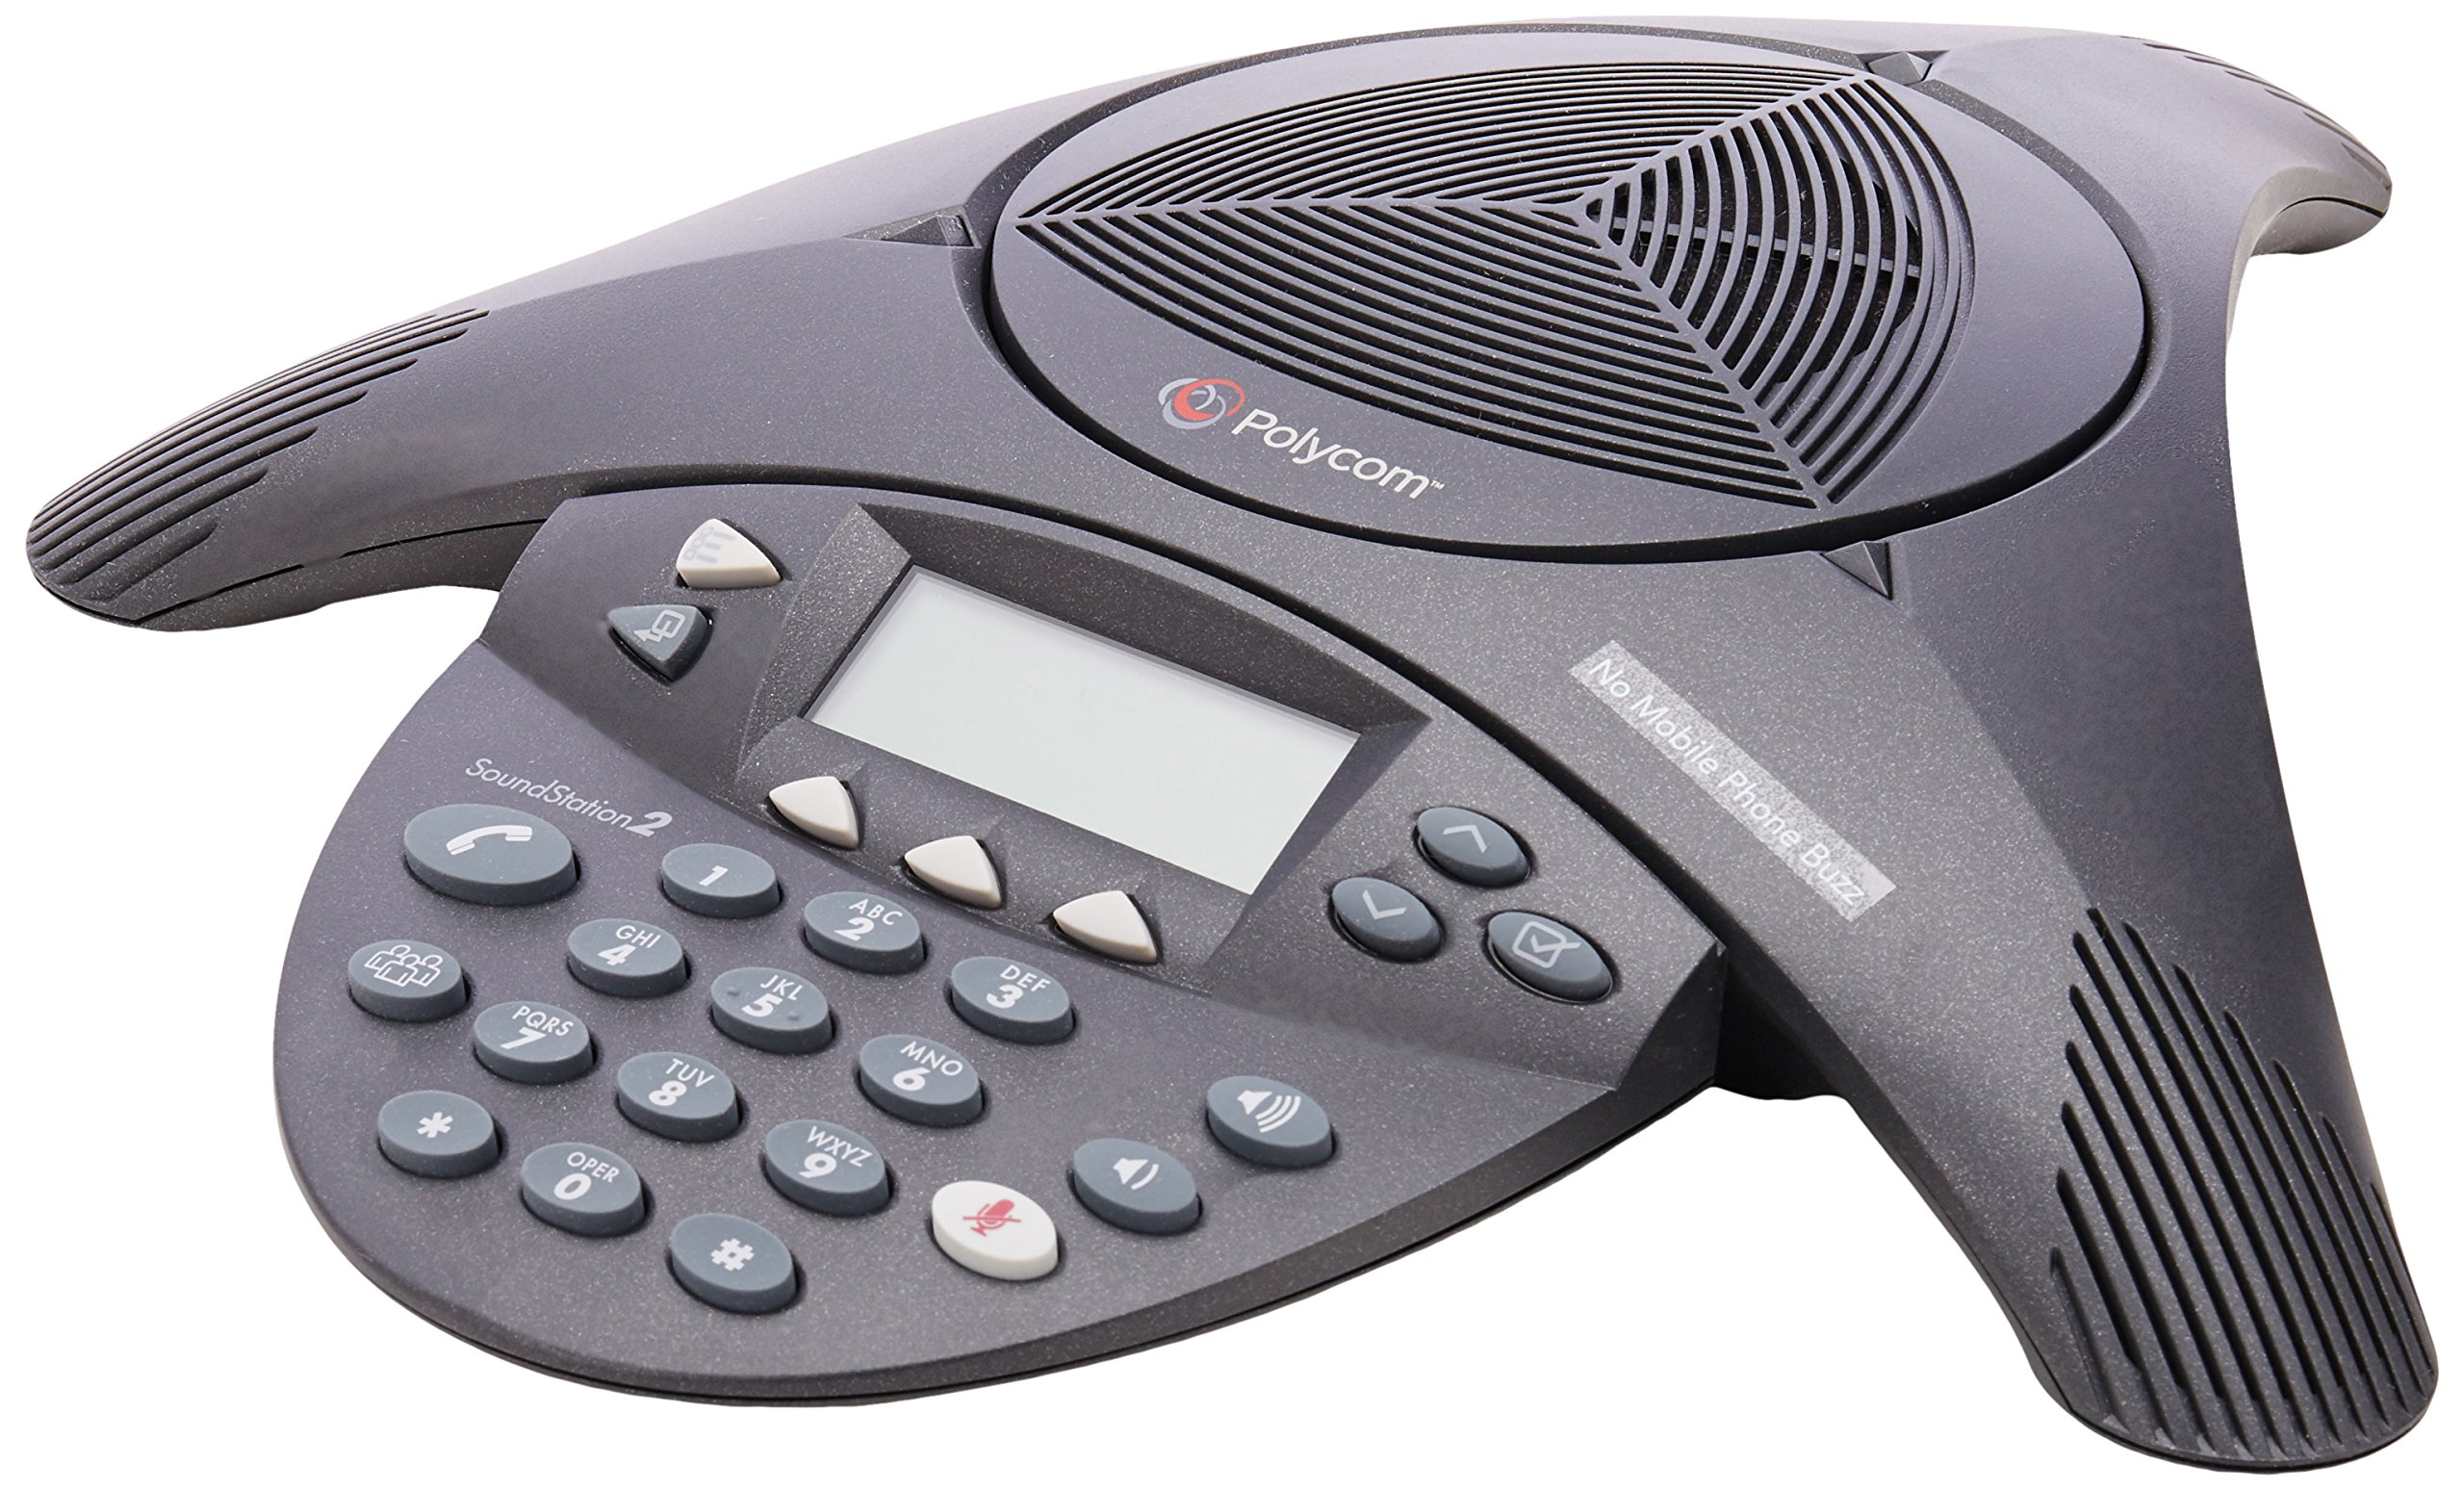 Polycom SoundStation 2 Non Expandable Analog Conference Phone (2200-16000-001) by Polycom